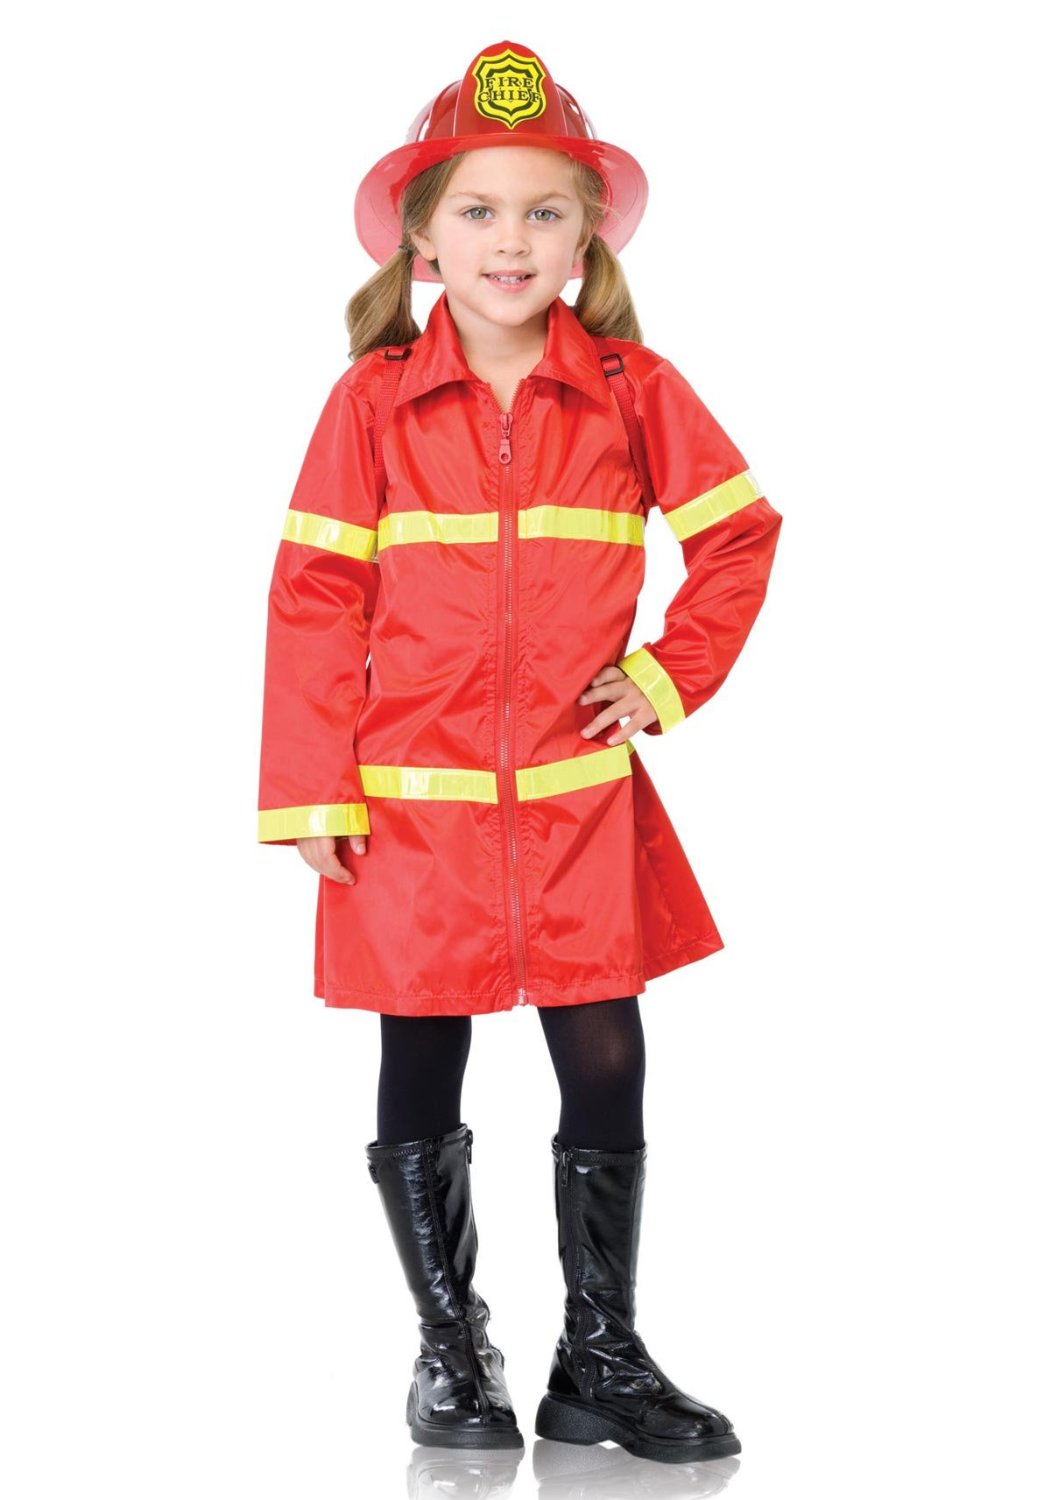 Find and save ideas about Diy fireman costumes on Pinterest. | See more ideas about Dalmatian costume, Dalmatian party costume and Costumes ideas. DIY and crafts. Diy fireman costumes girl on fire transition dress Girl On Fire - Red, Orange, and Yellow. needs to be shortened in front to make it a high-low.